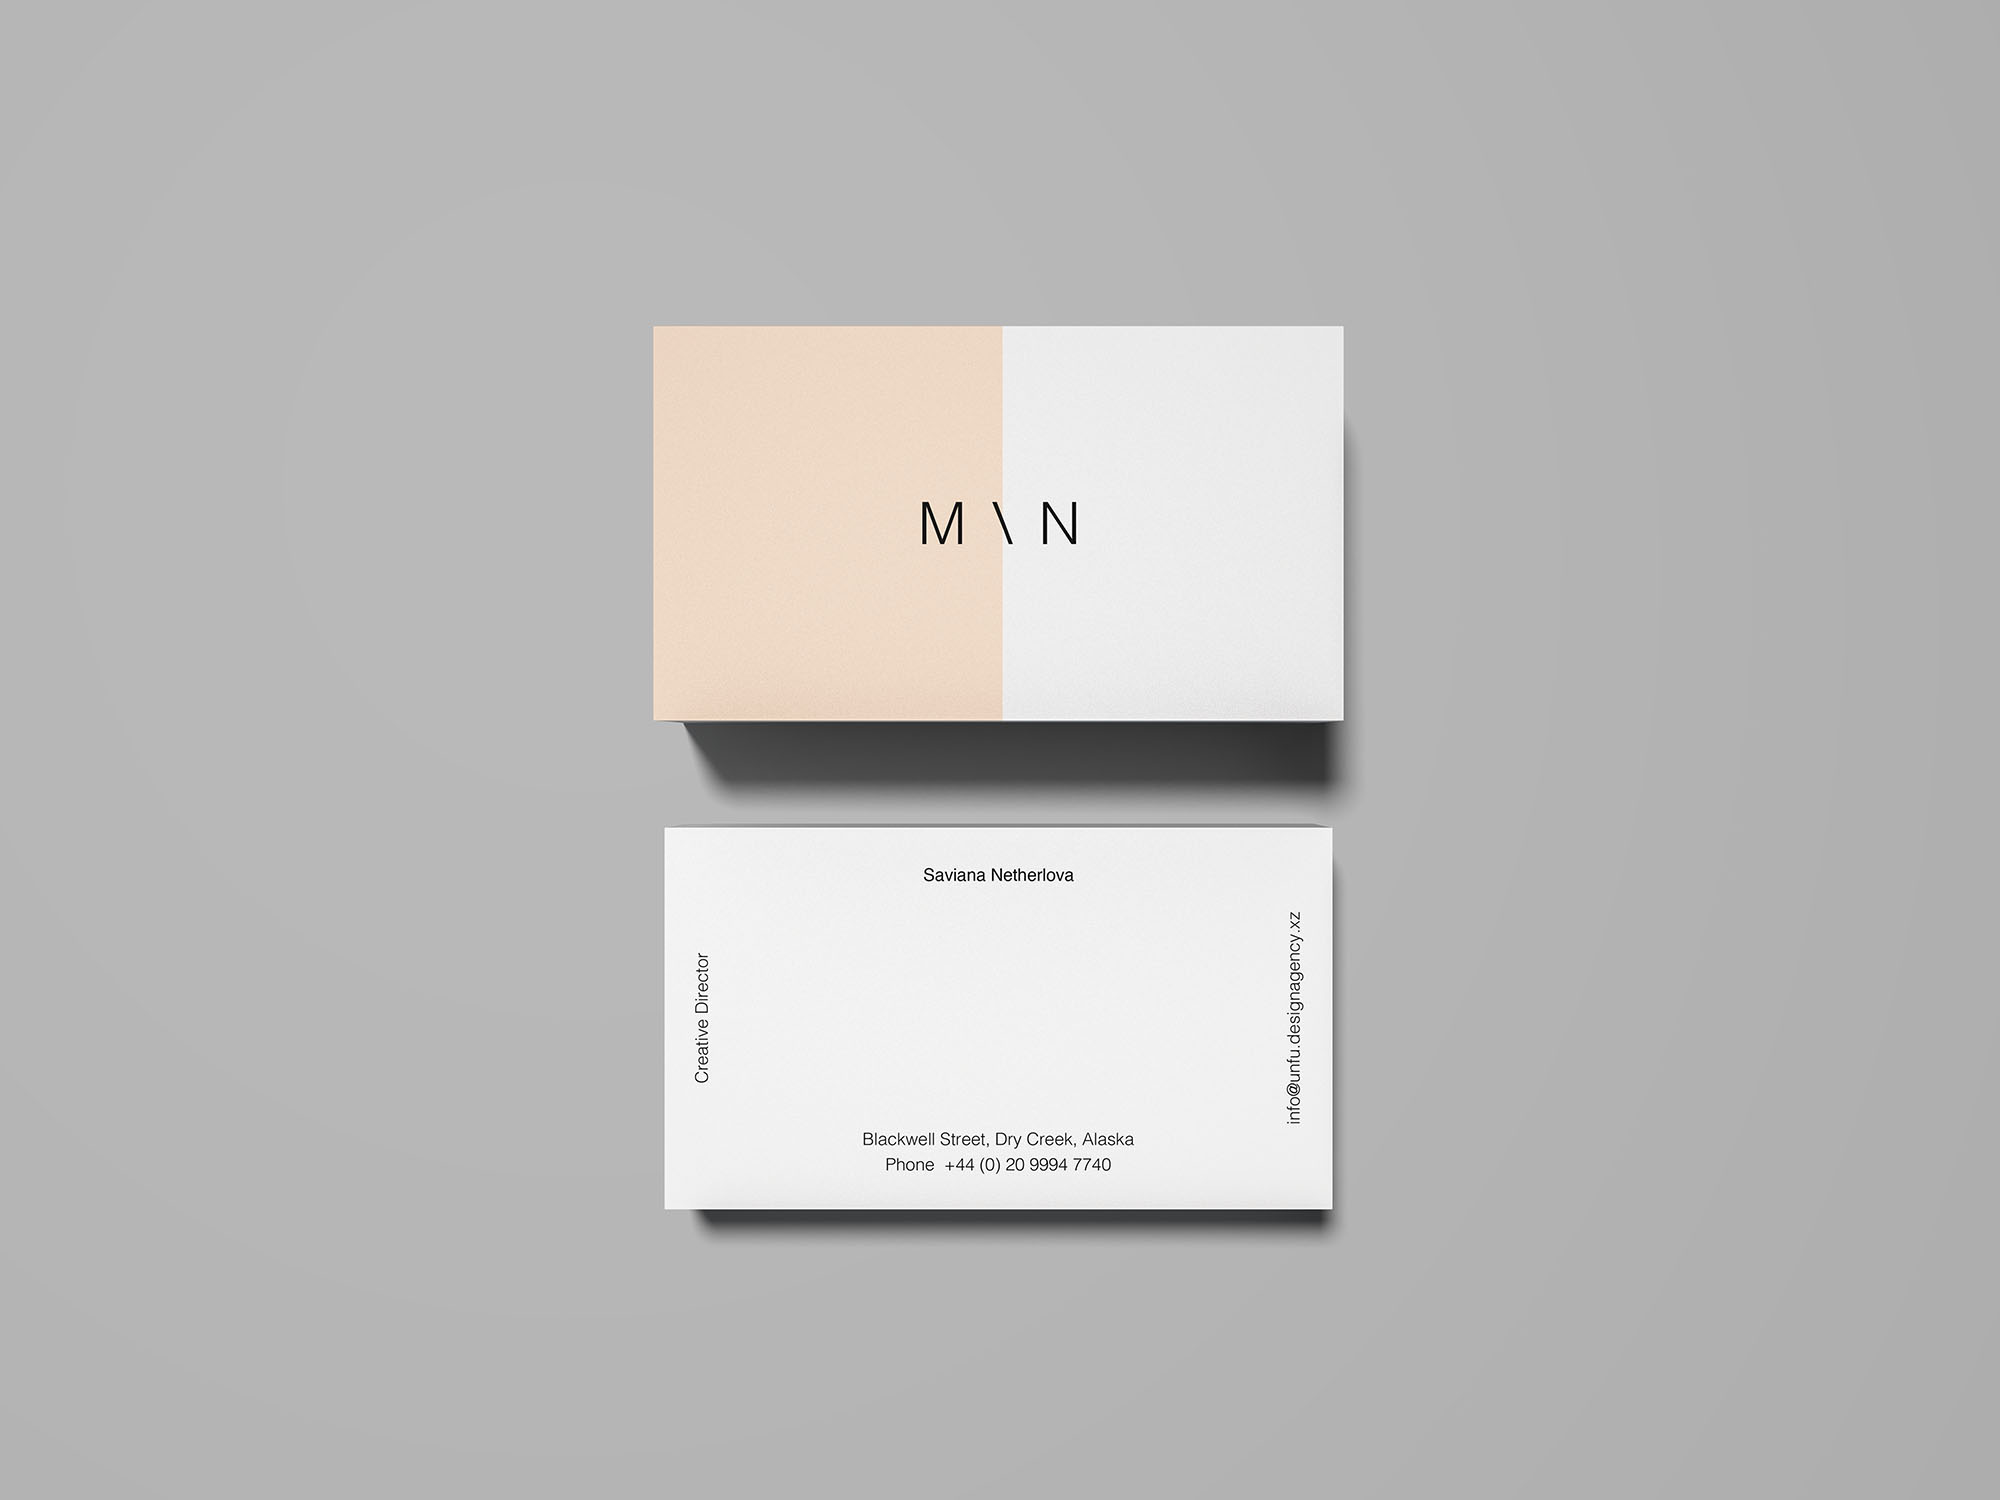 free overhead business card mockup psd - Business Card Mockups